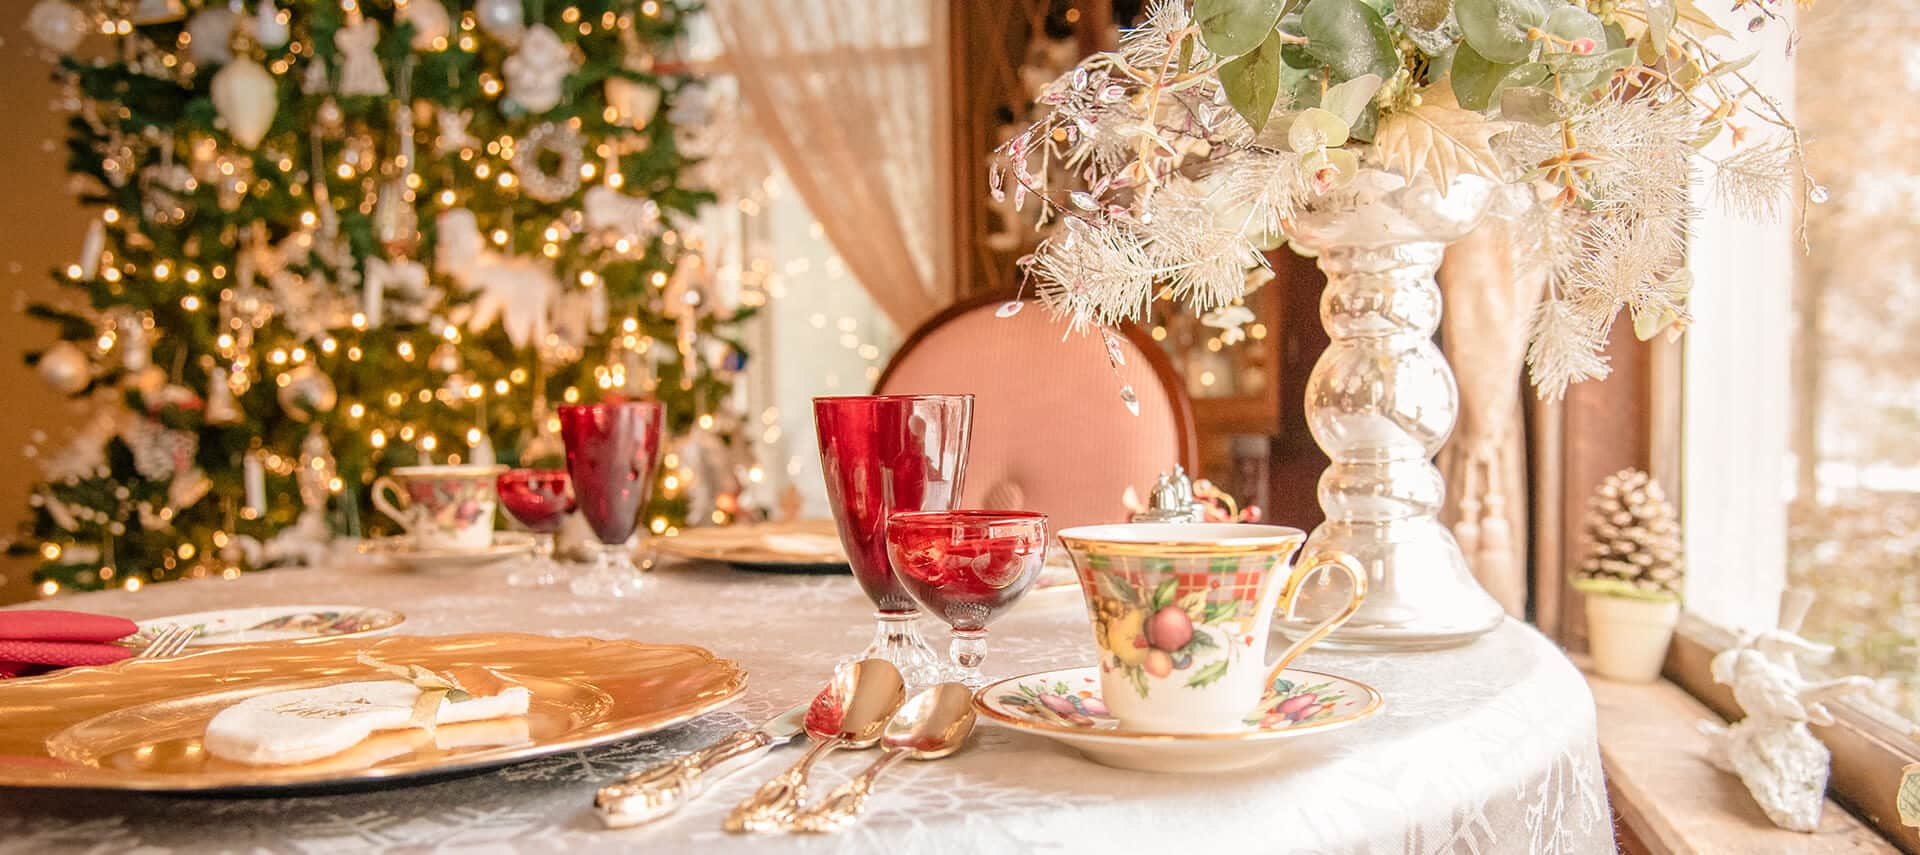 Table setting with Christmas china and red glasses